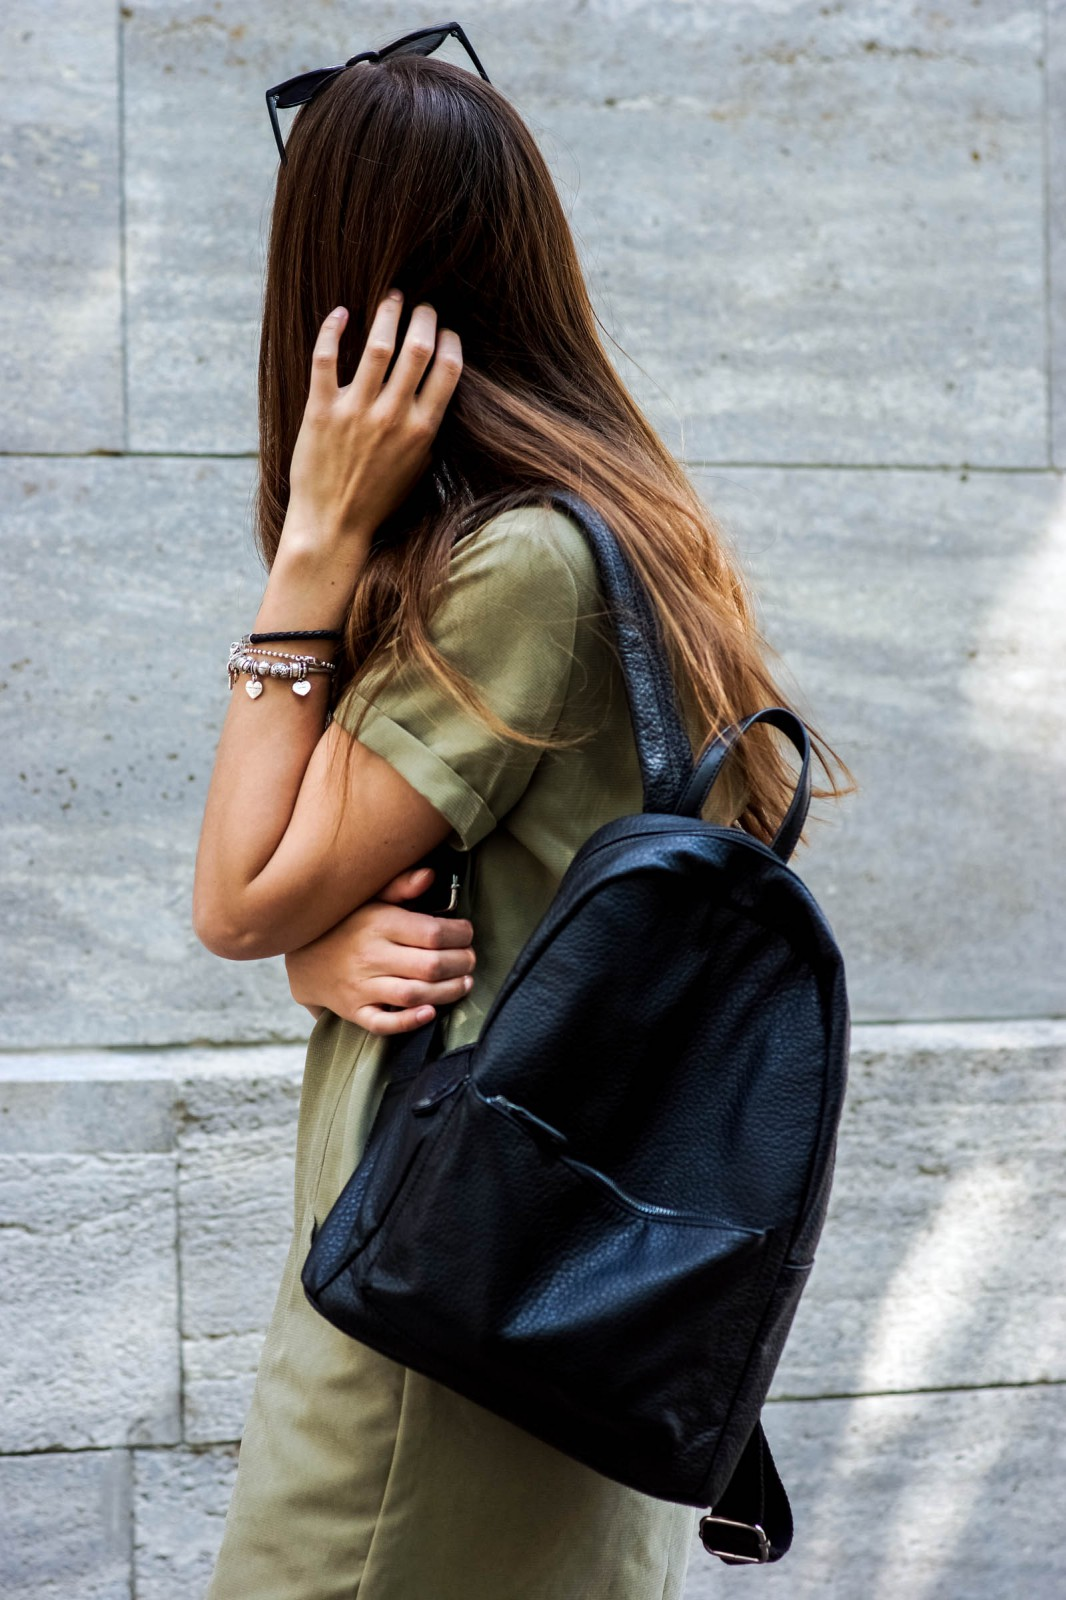 How to wear a backpack